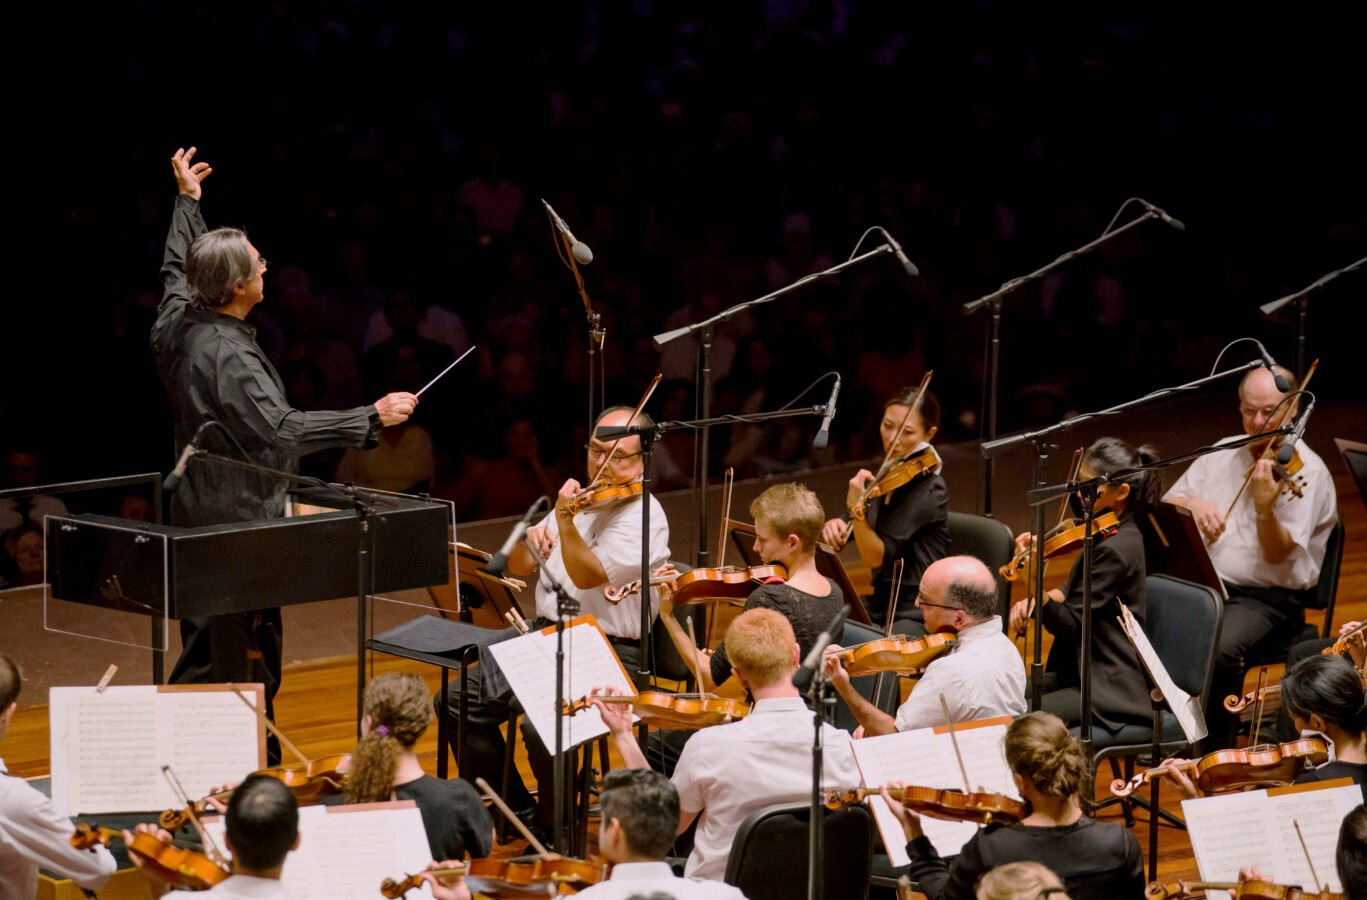 This year's concert at the Jay Pritzker Pavilion marks the ninth free CSO community concert since the beginning of Riccardo Muti's tenure as music director of the CSO and the fifth time Muti has led a CSO community concert in Millennium Park. (Photo: Todd Rosenberg)